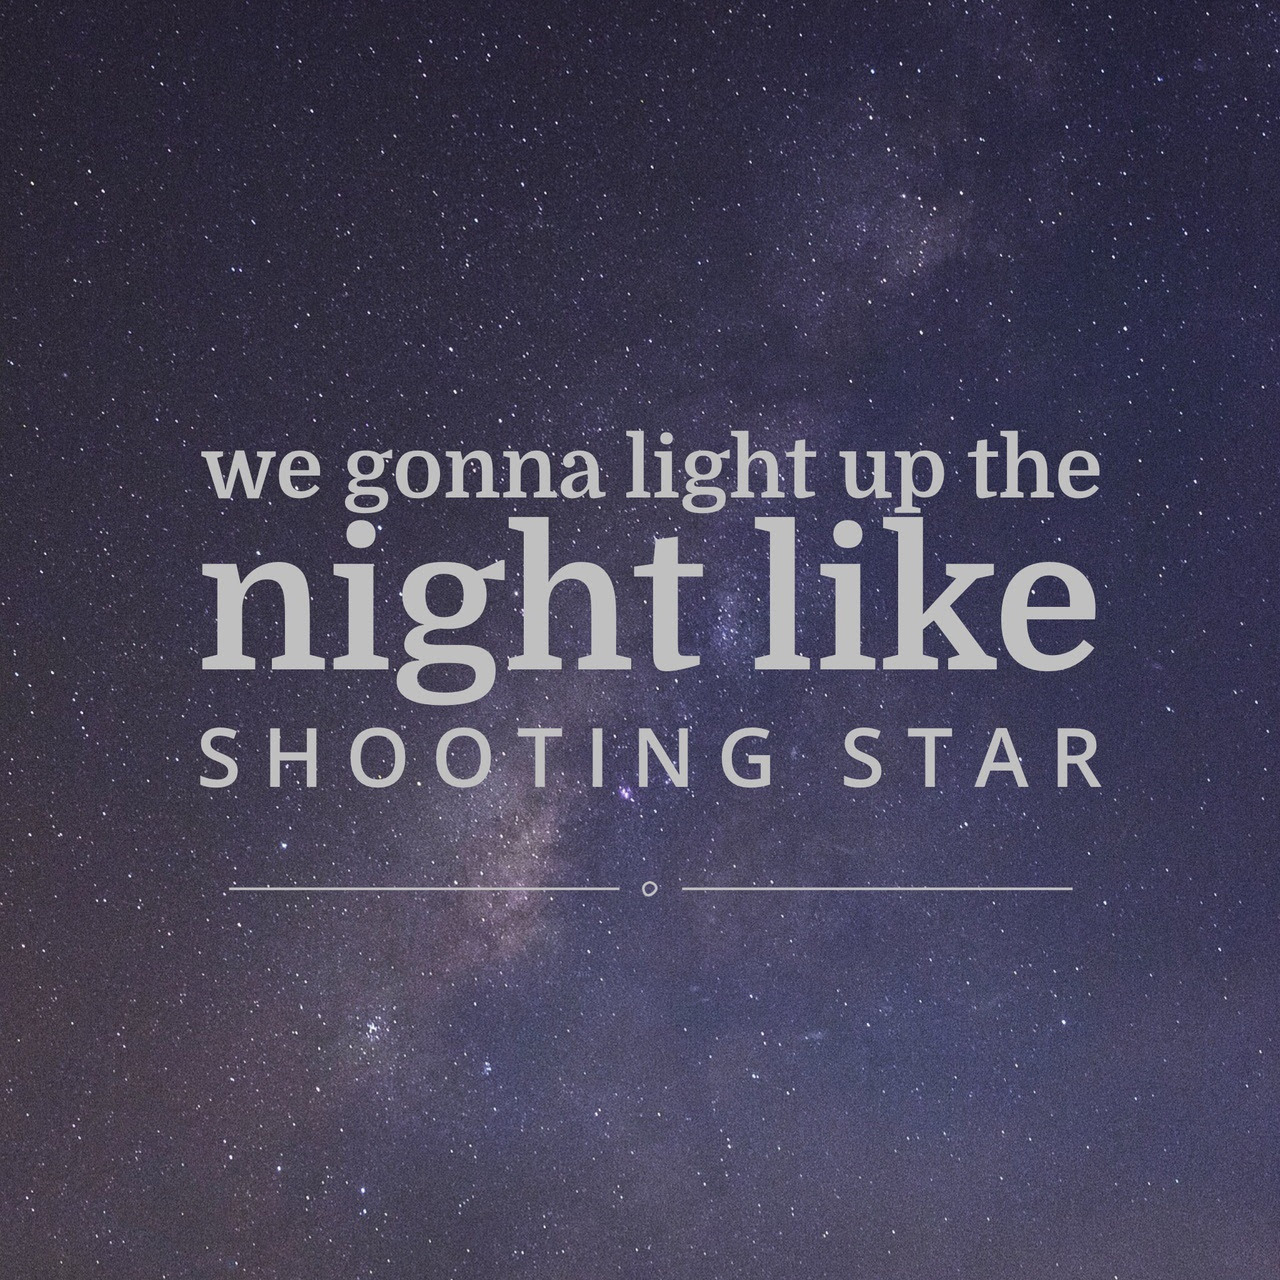 Dancing In The Dark Easel Font Home Lyrics Image 3885107 By